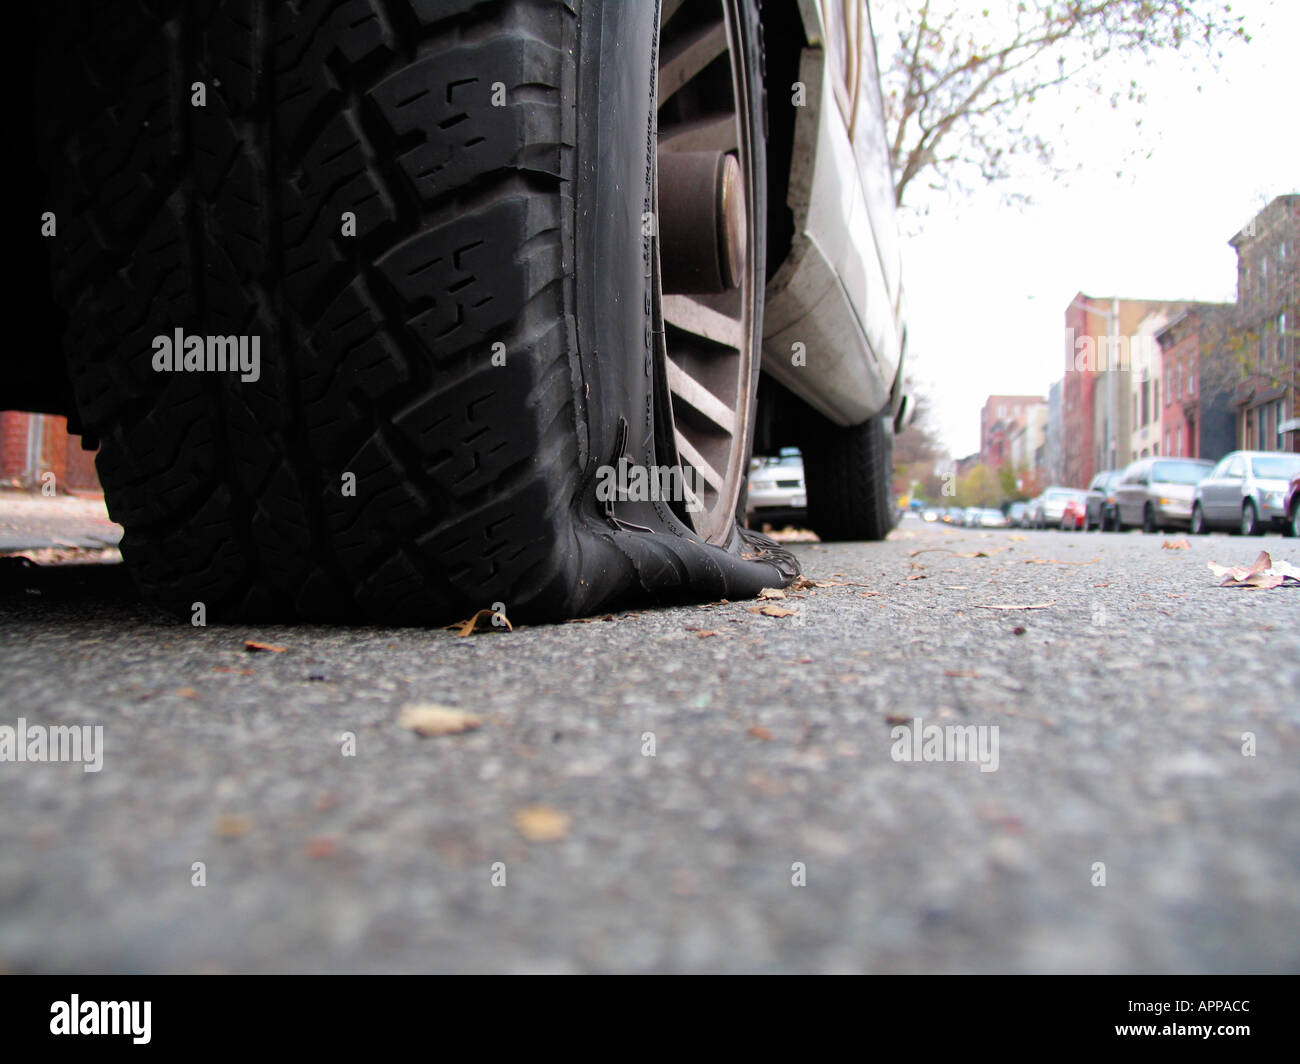 Deflated tire on street (close up), New York City, New York, USA - Stock Image